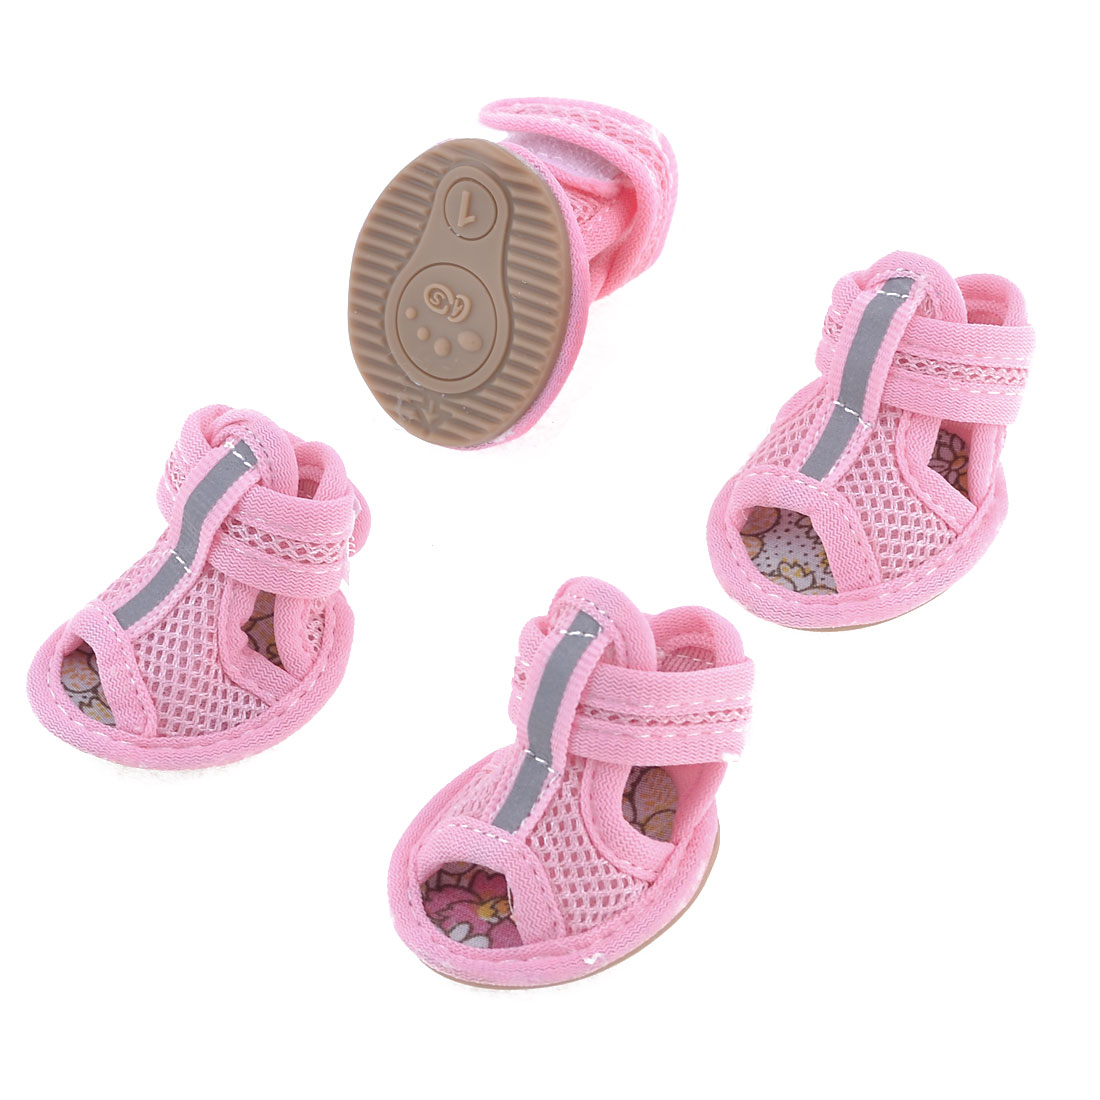 2 Pairs Rubber Sole Pink Mesh Sandals Yorkie Chihuaha Dog Shoes Size XXS